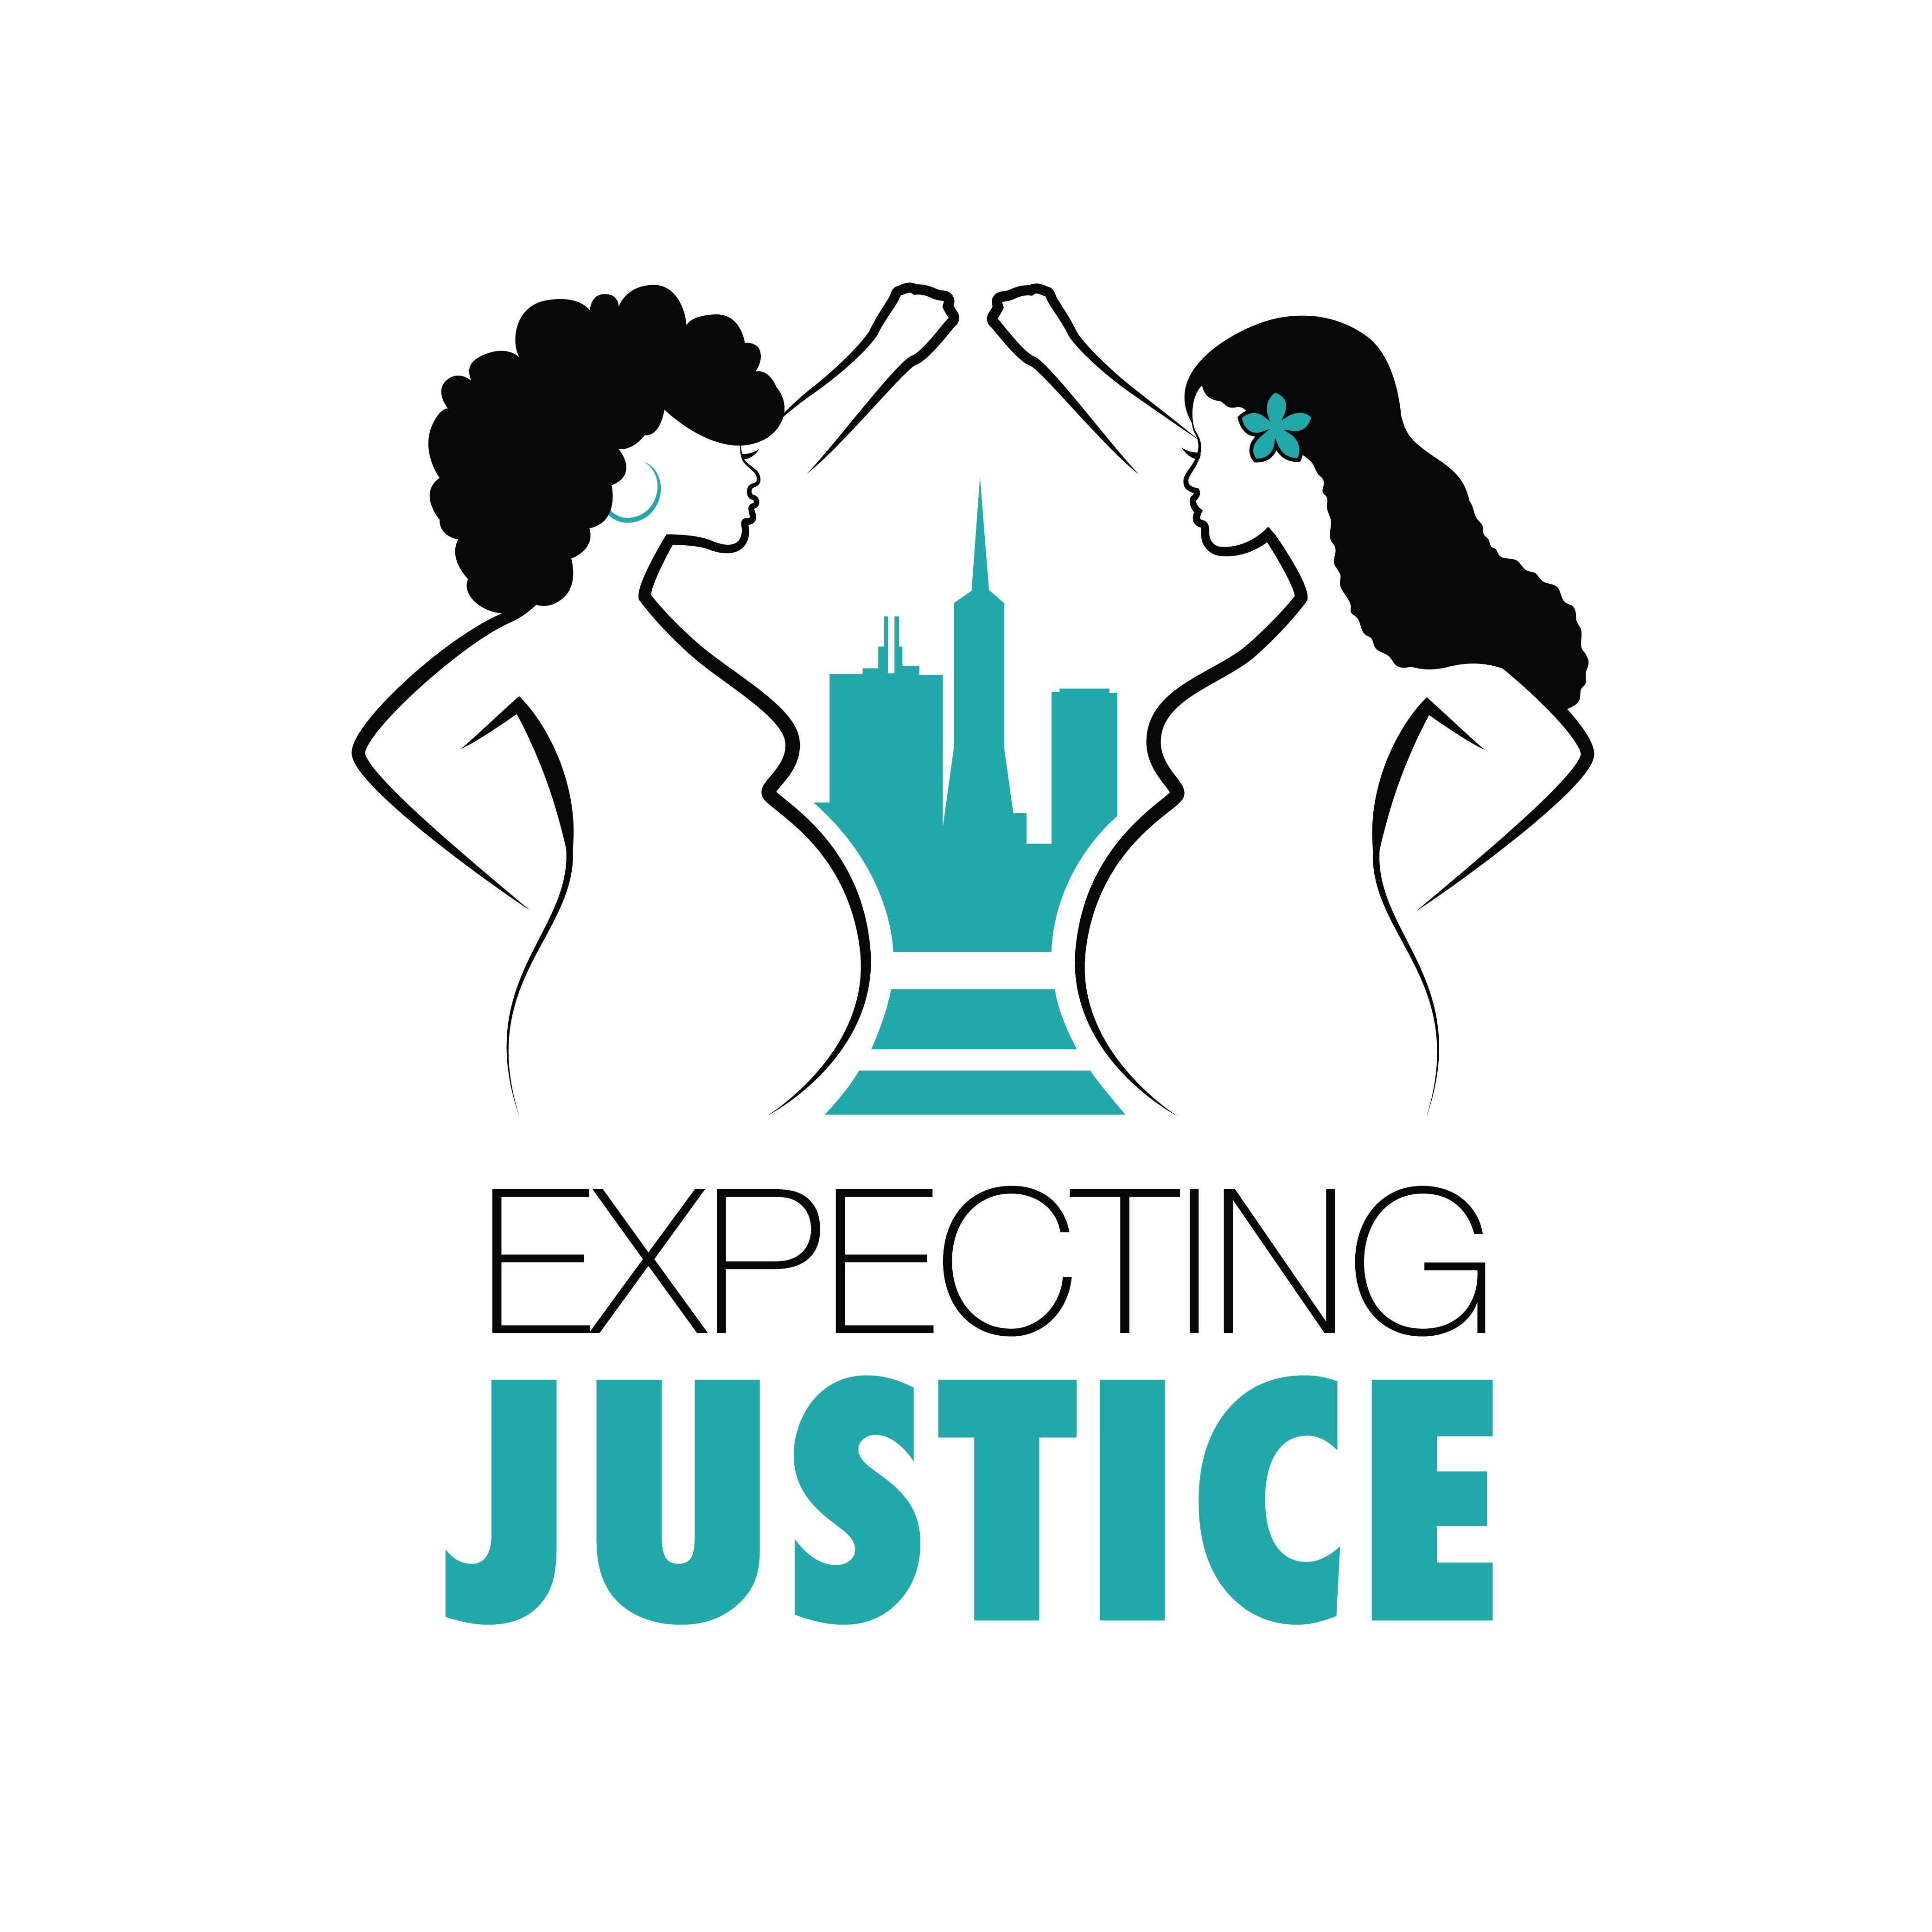 Expecting Justice logo